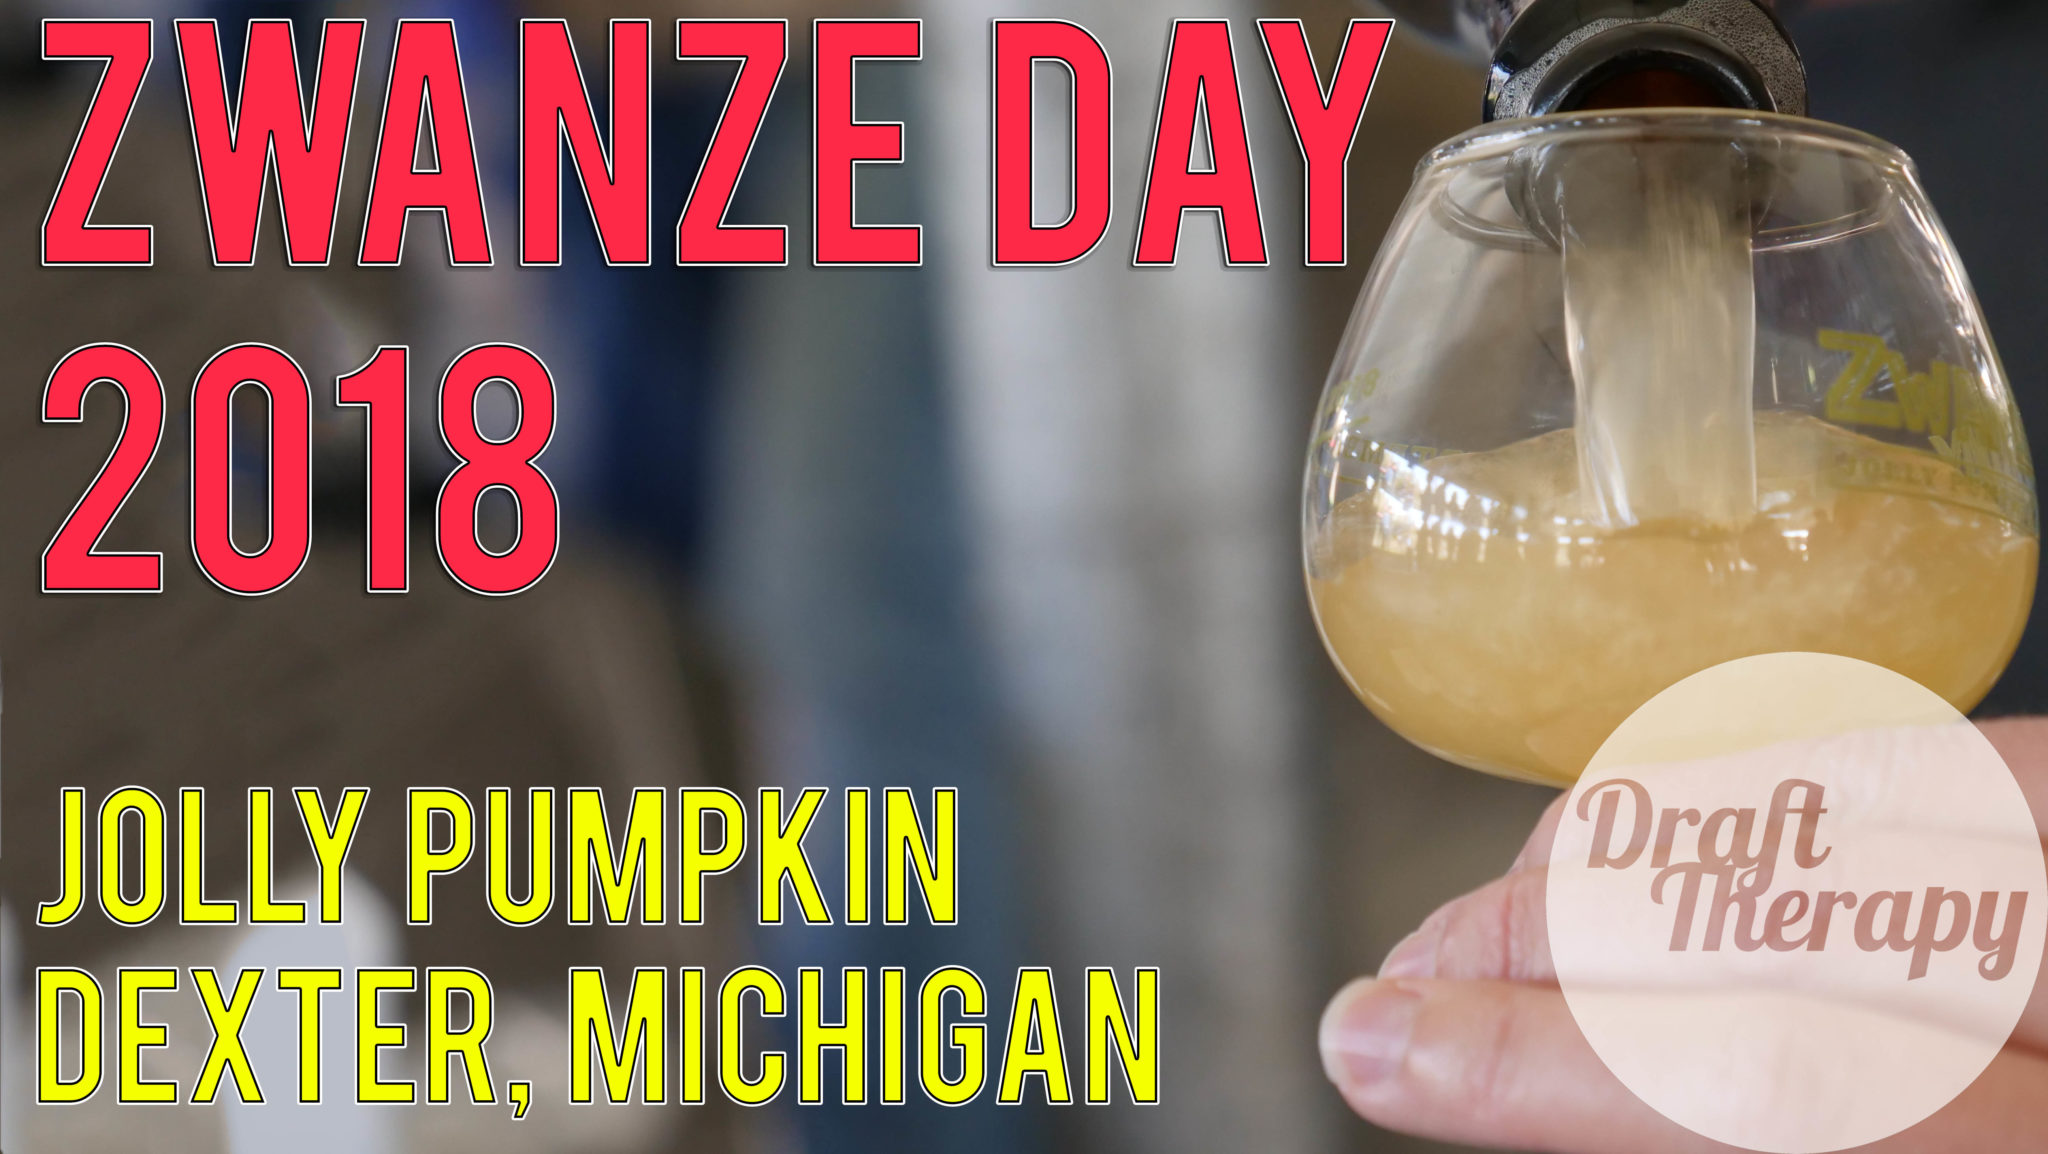 Zwanze Day 2018 at Jolly Pumpkin